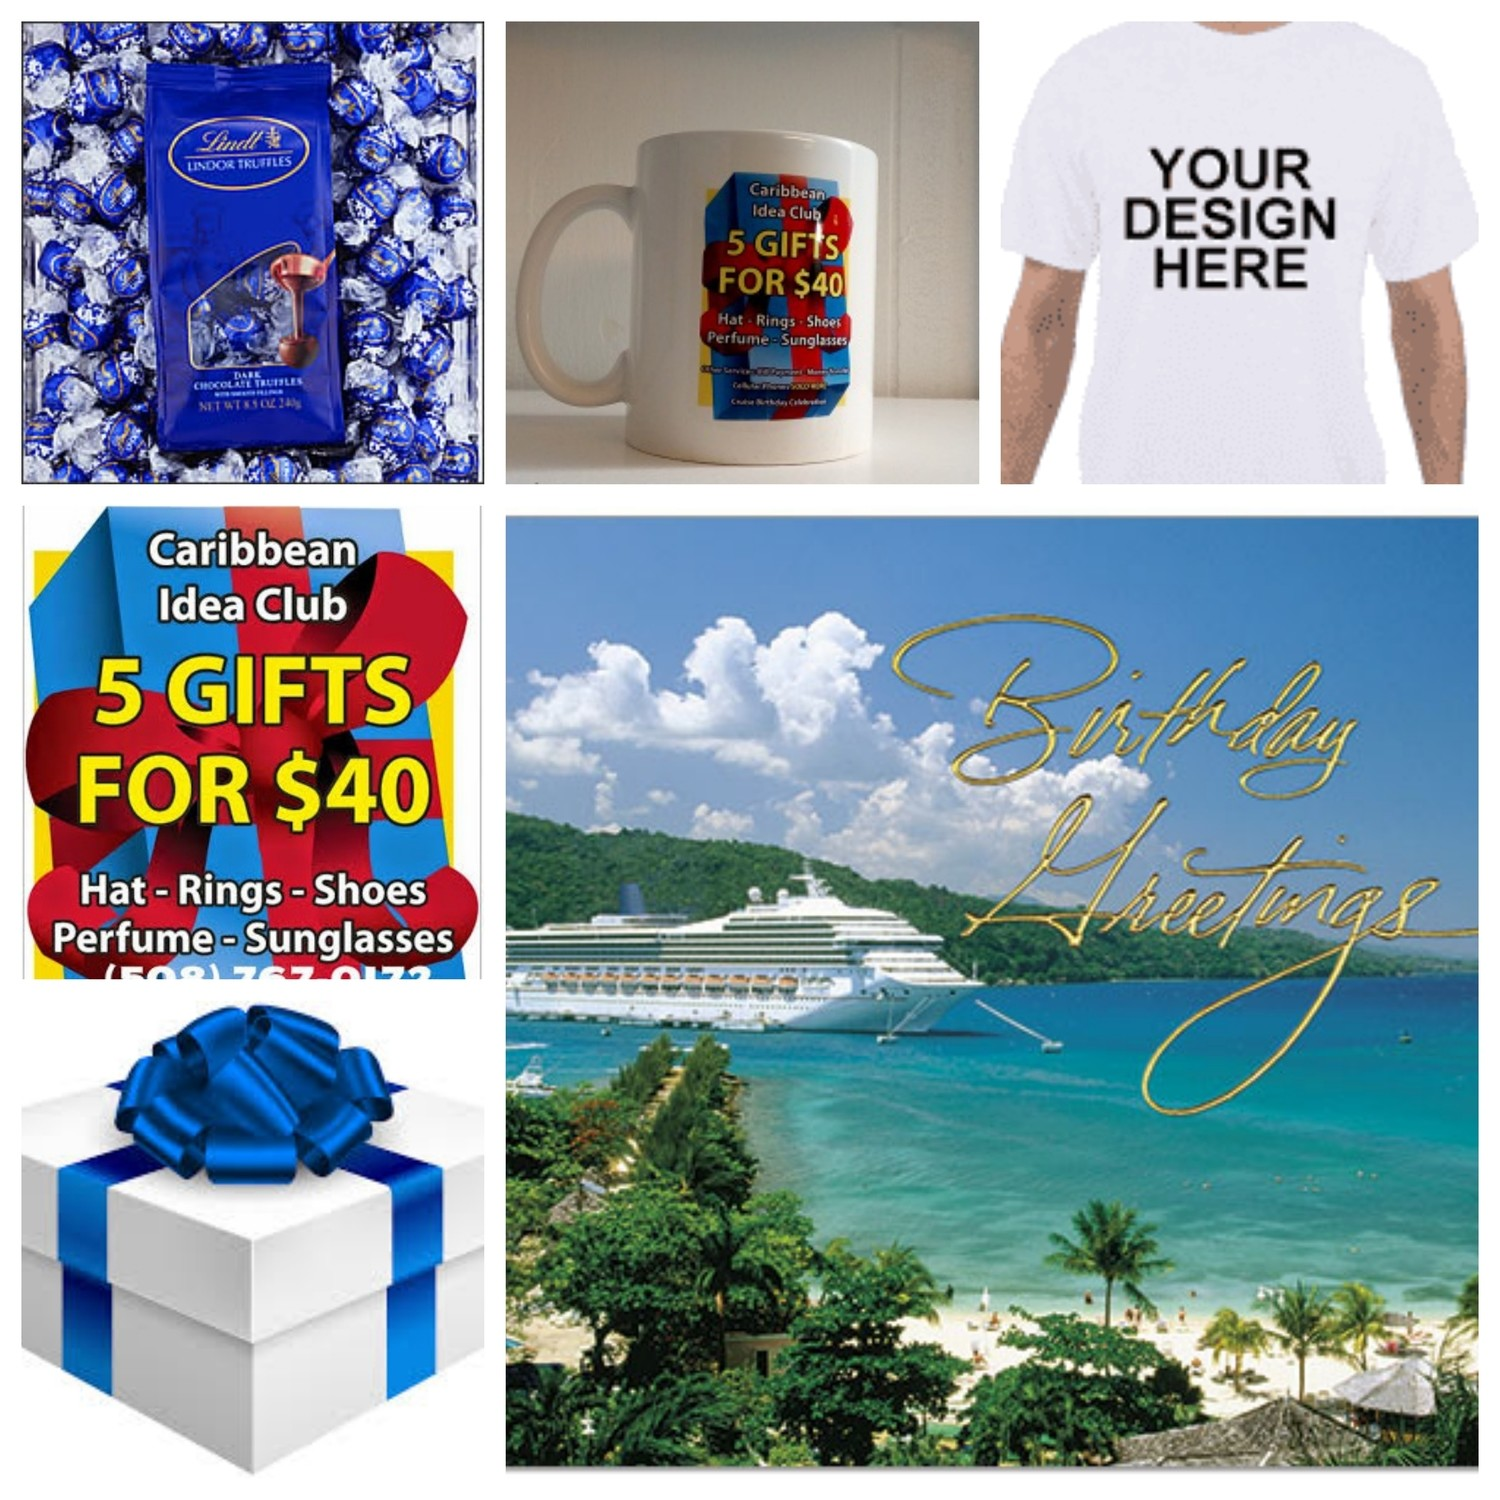 Cruise voucher & Cup cover with chocolate